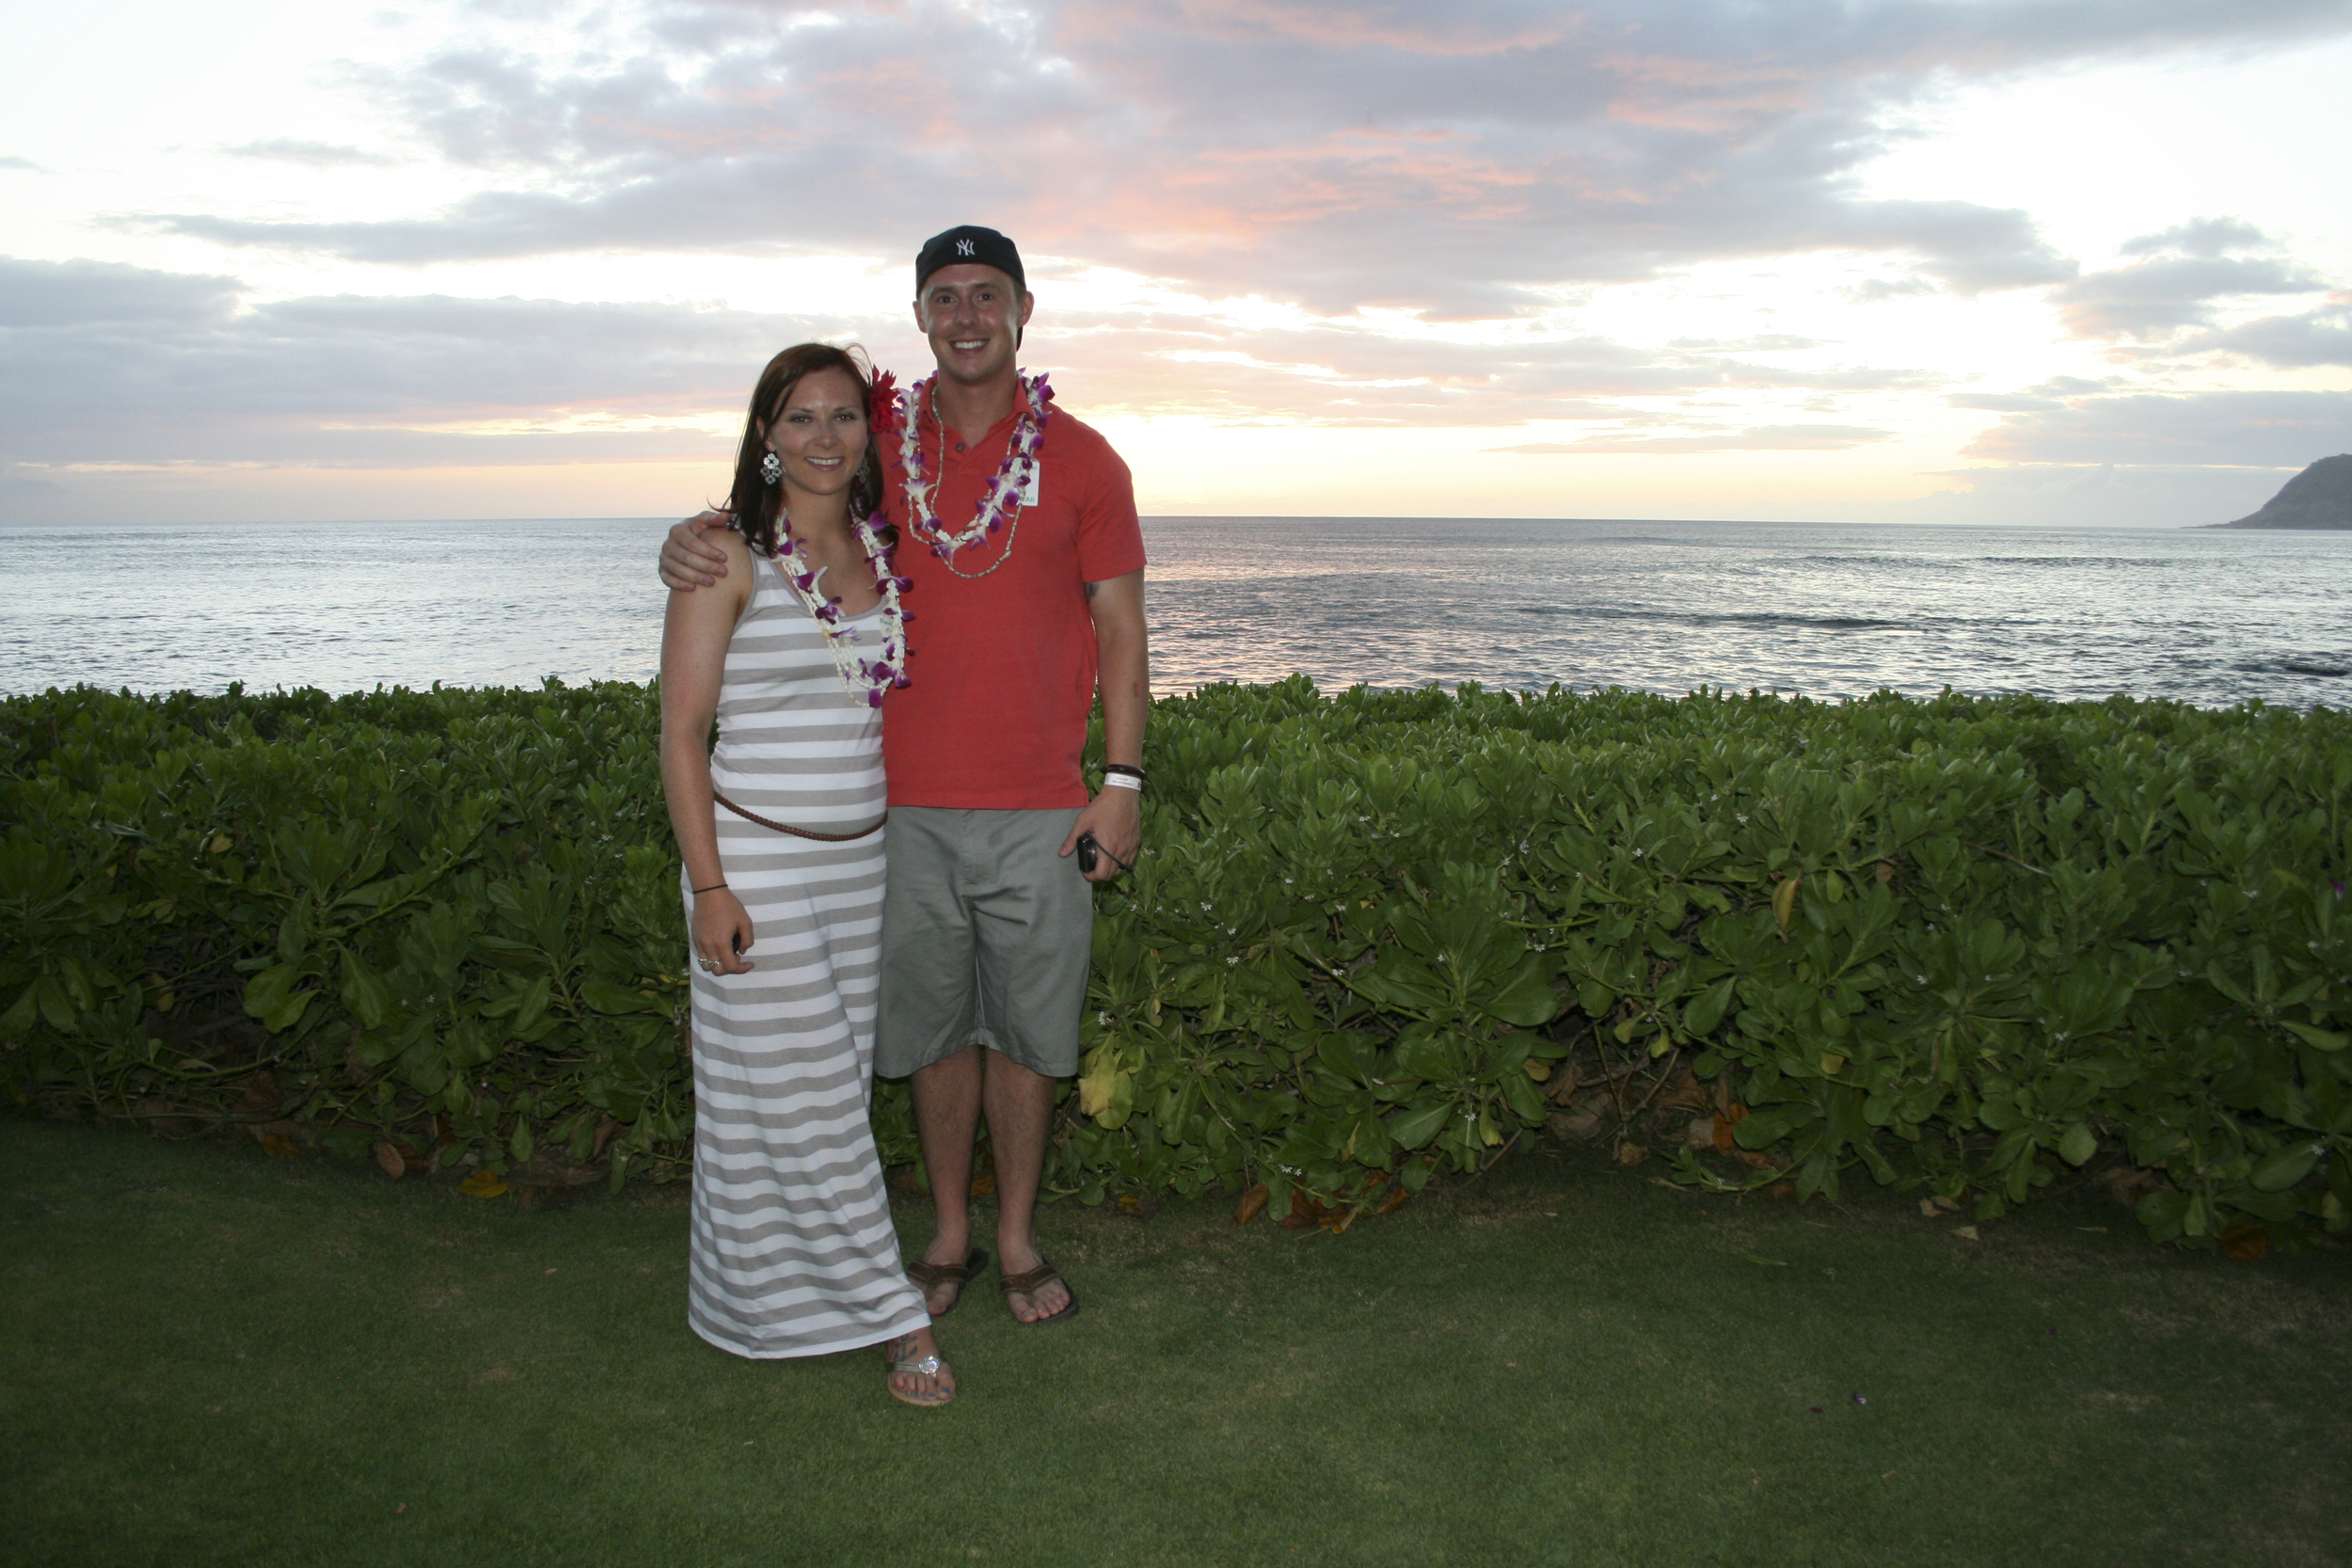 Me and the hubby at sunset.